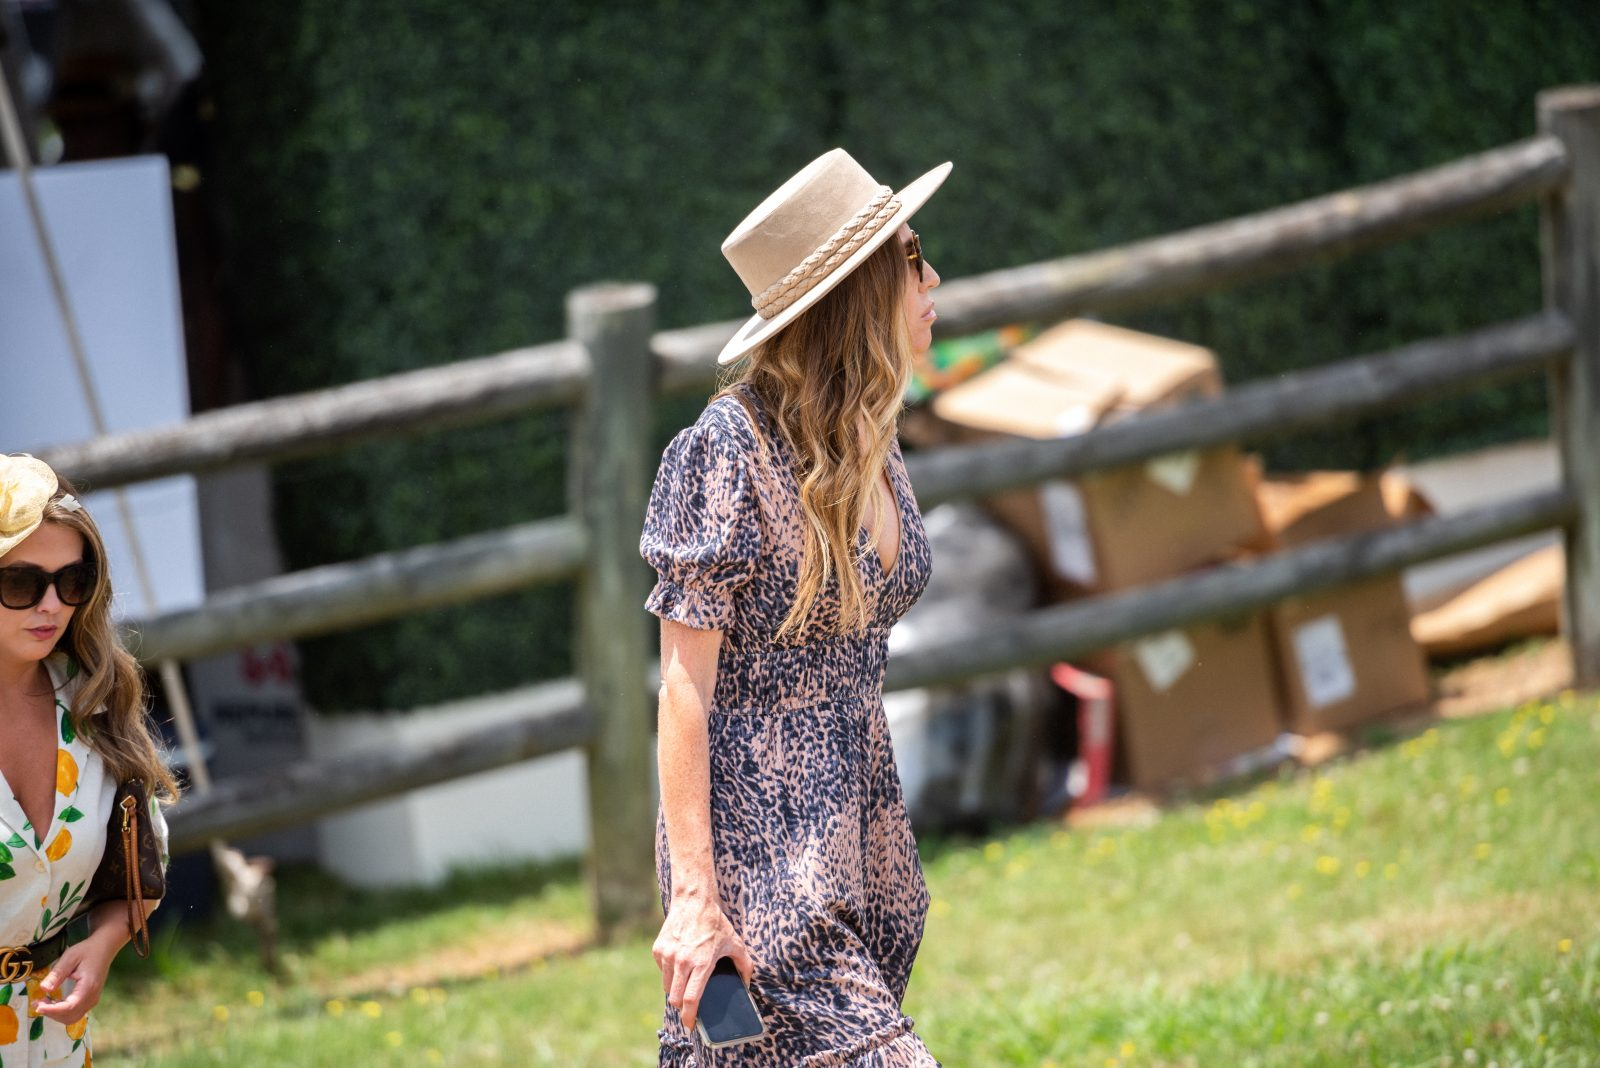 A woman with blonde hair, pink and blue dress, and brown hat at Steeplechase 21